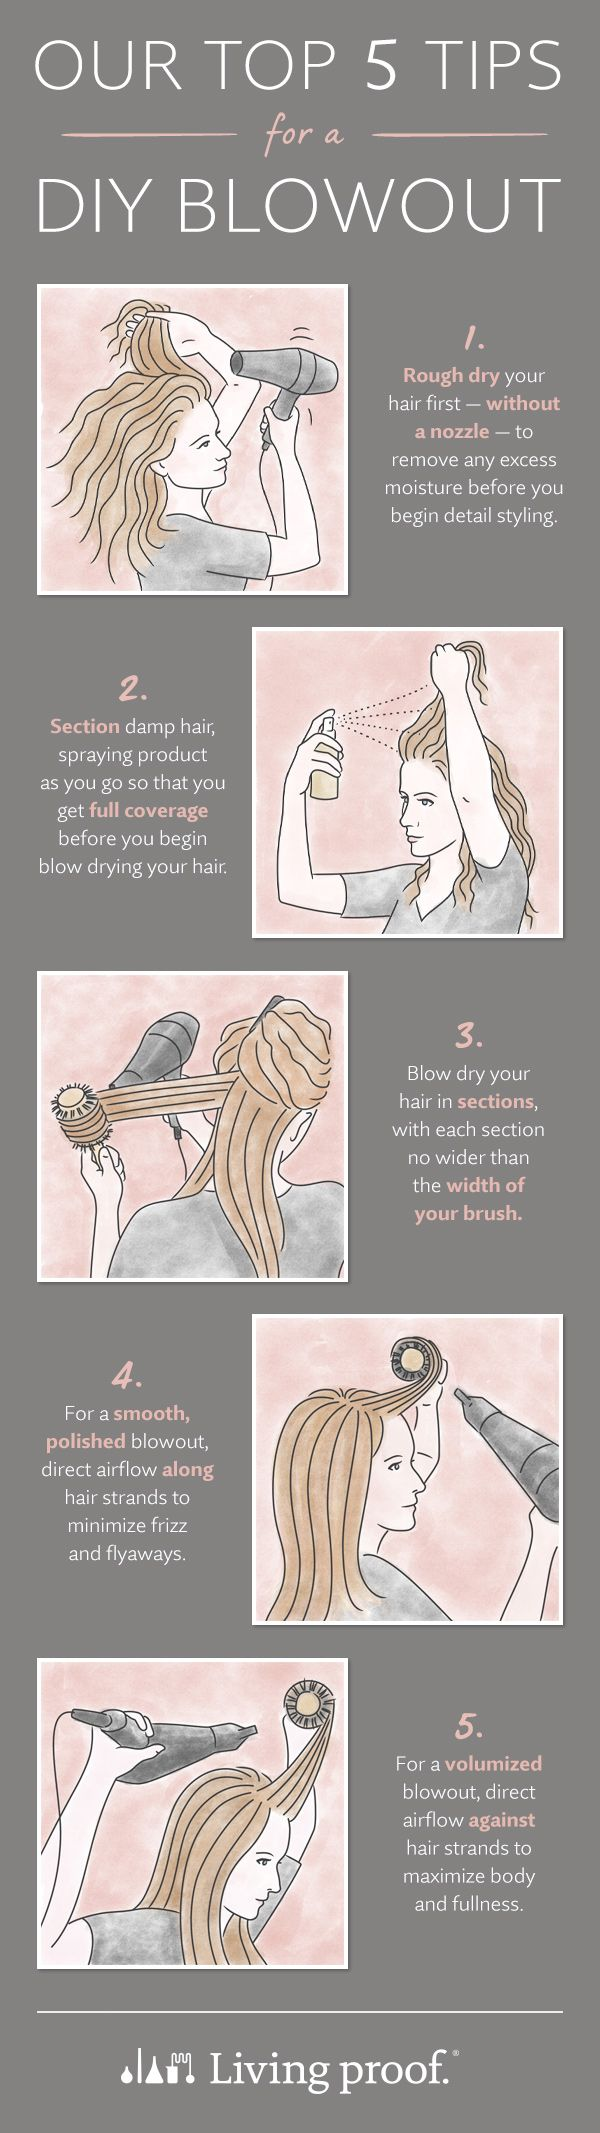 These tips make it so easy to get a salon-worthy blowout at home-